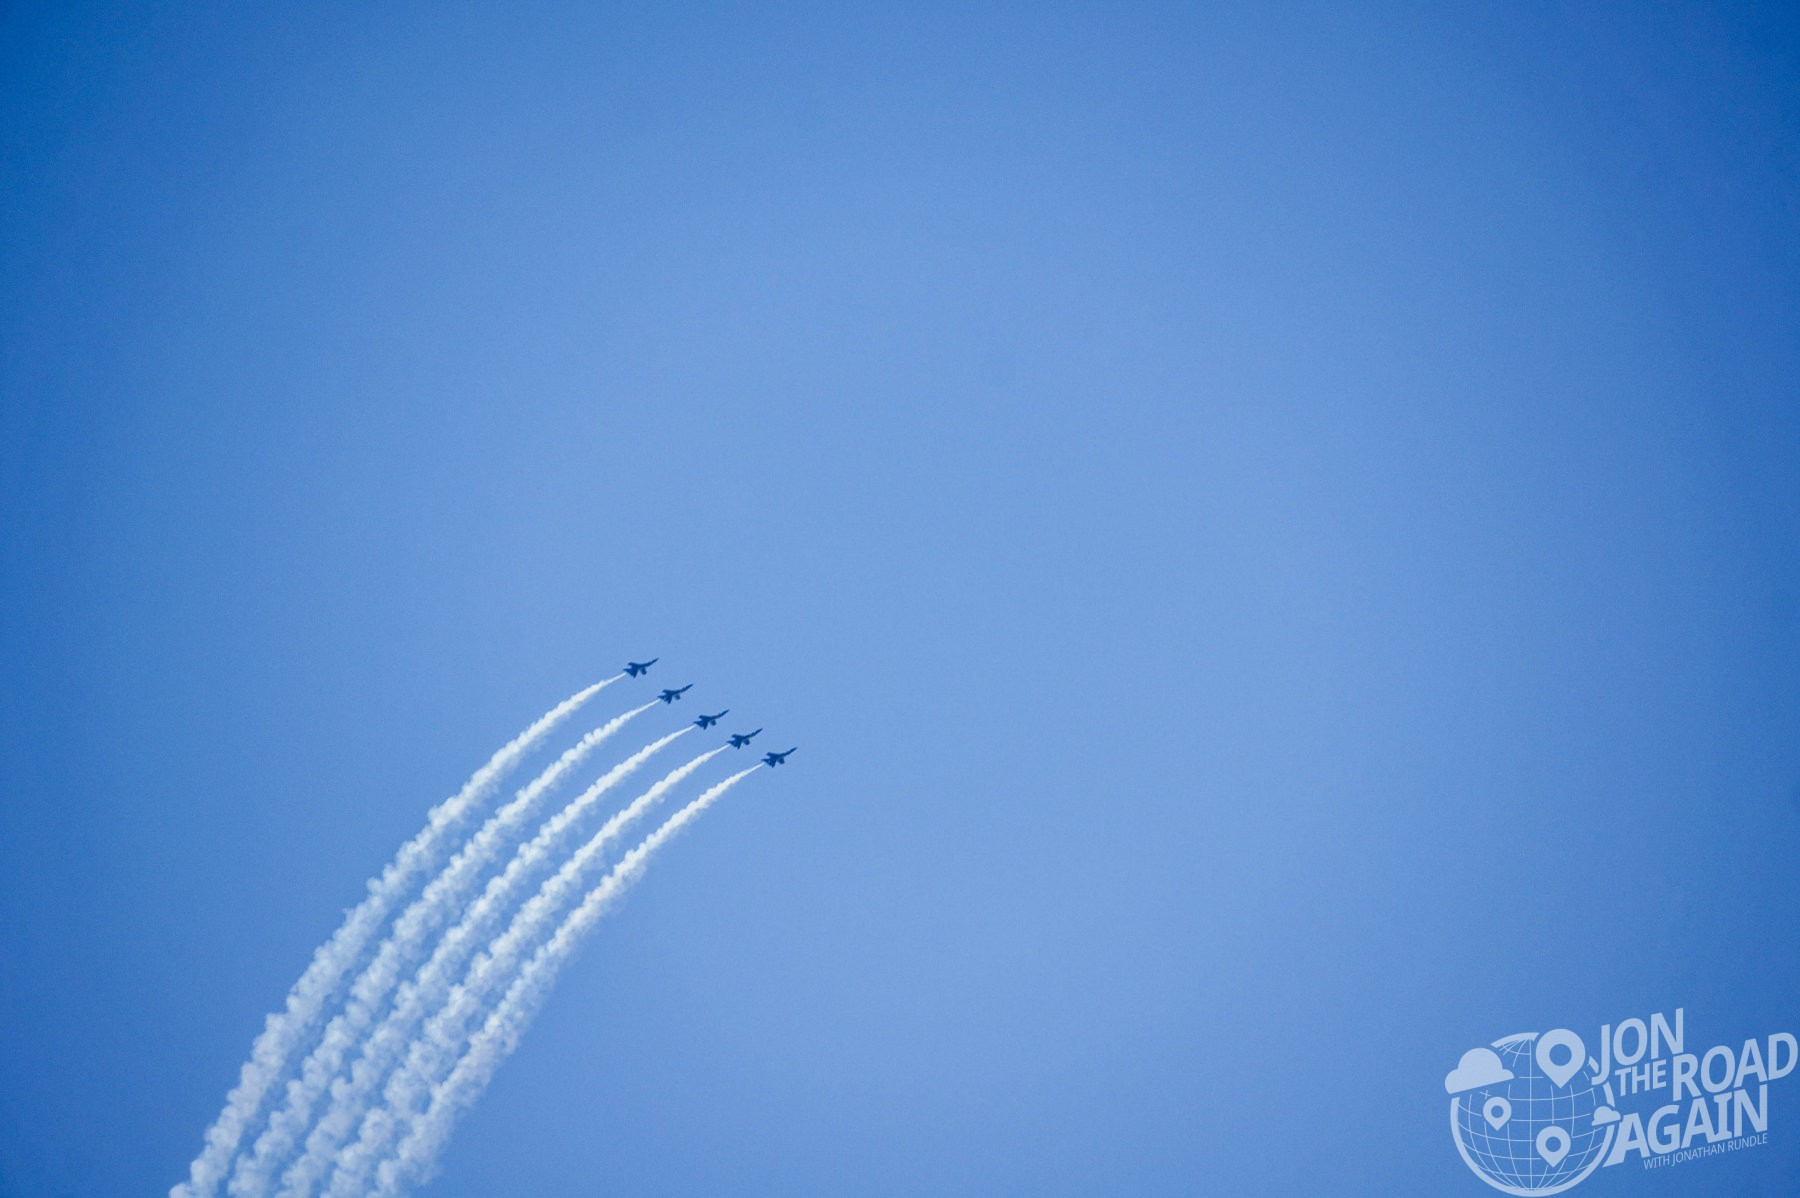 Blue Angels and Smoke Trails